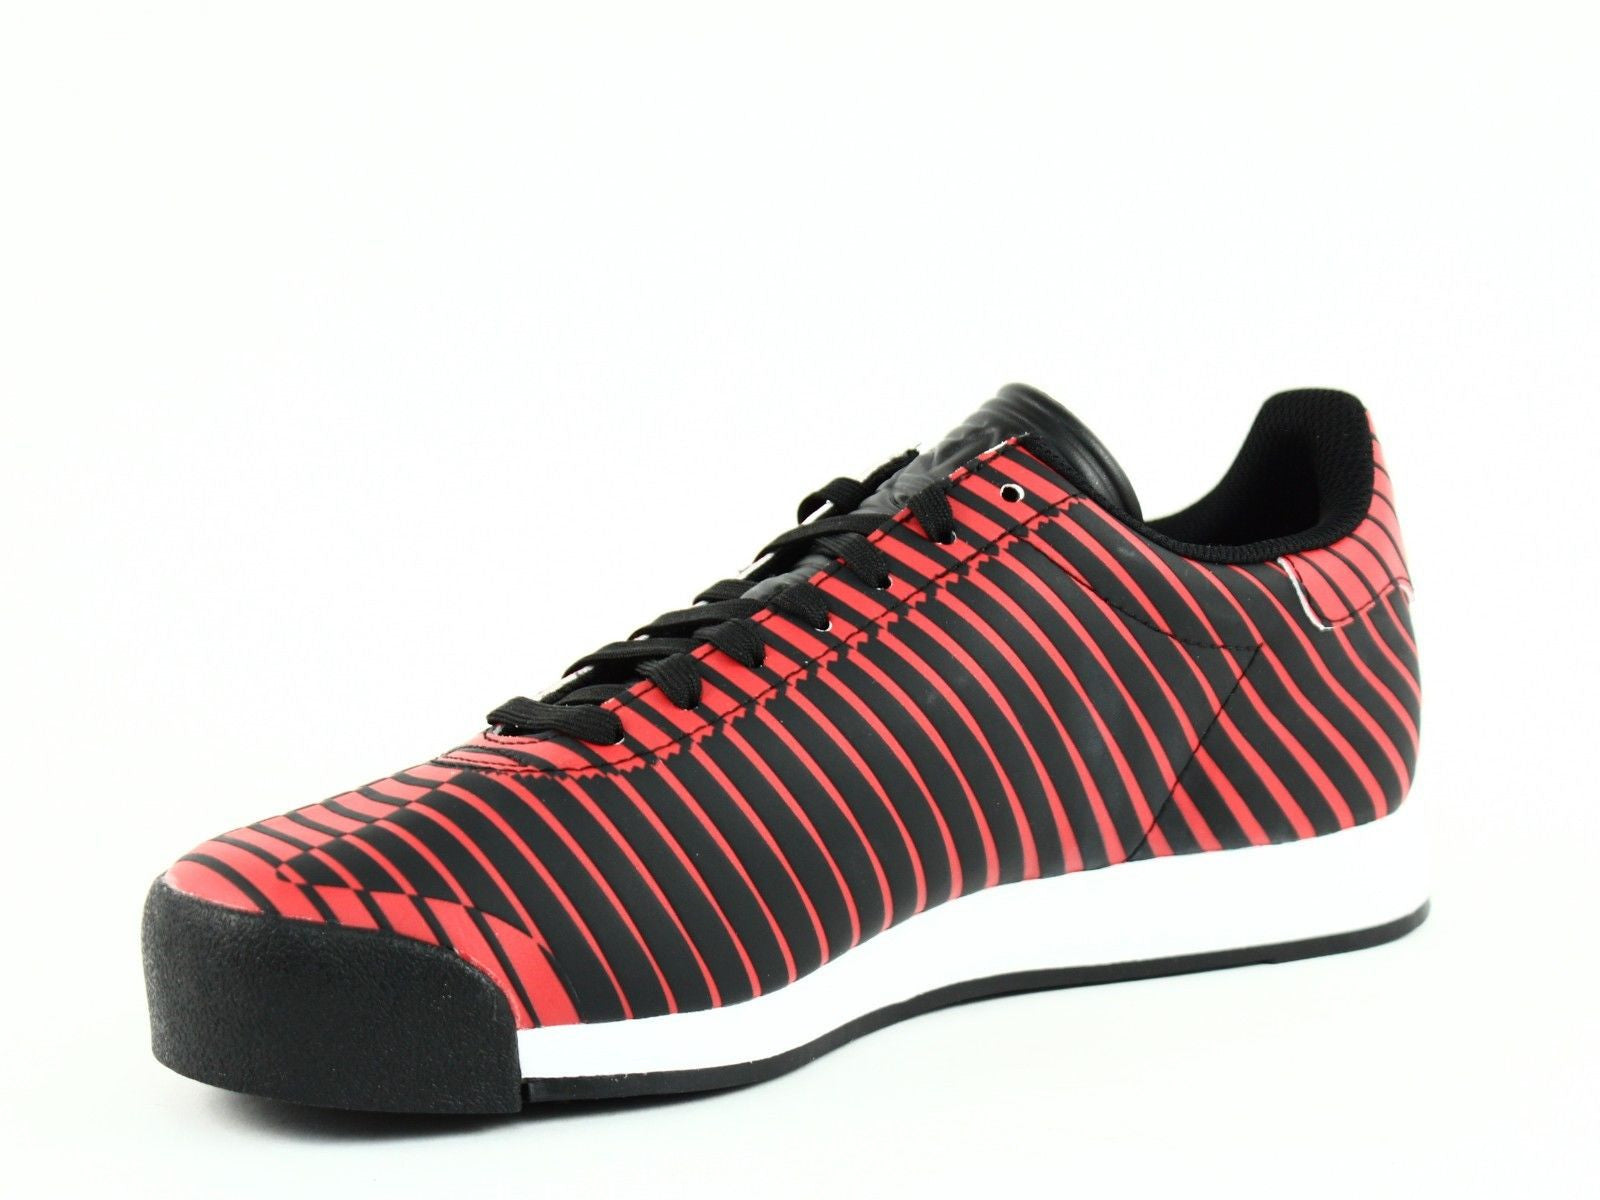 4312c4df9ce719 ... best price adidas samoa plus mens sneakers athletic shoes black red  869f8 697c9 sale adidas nmd ...